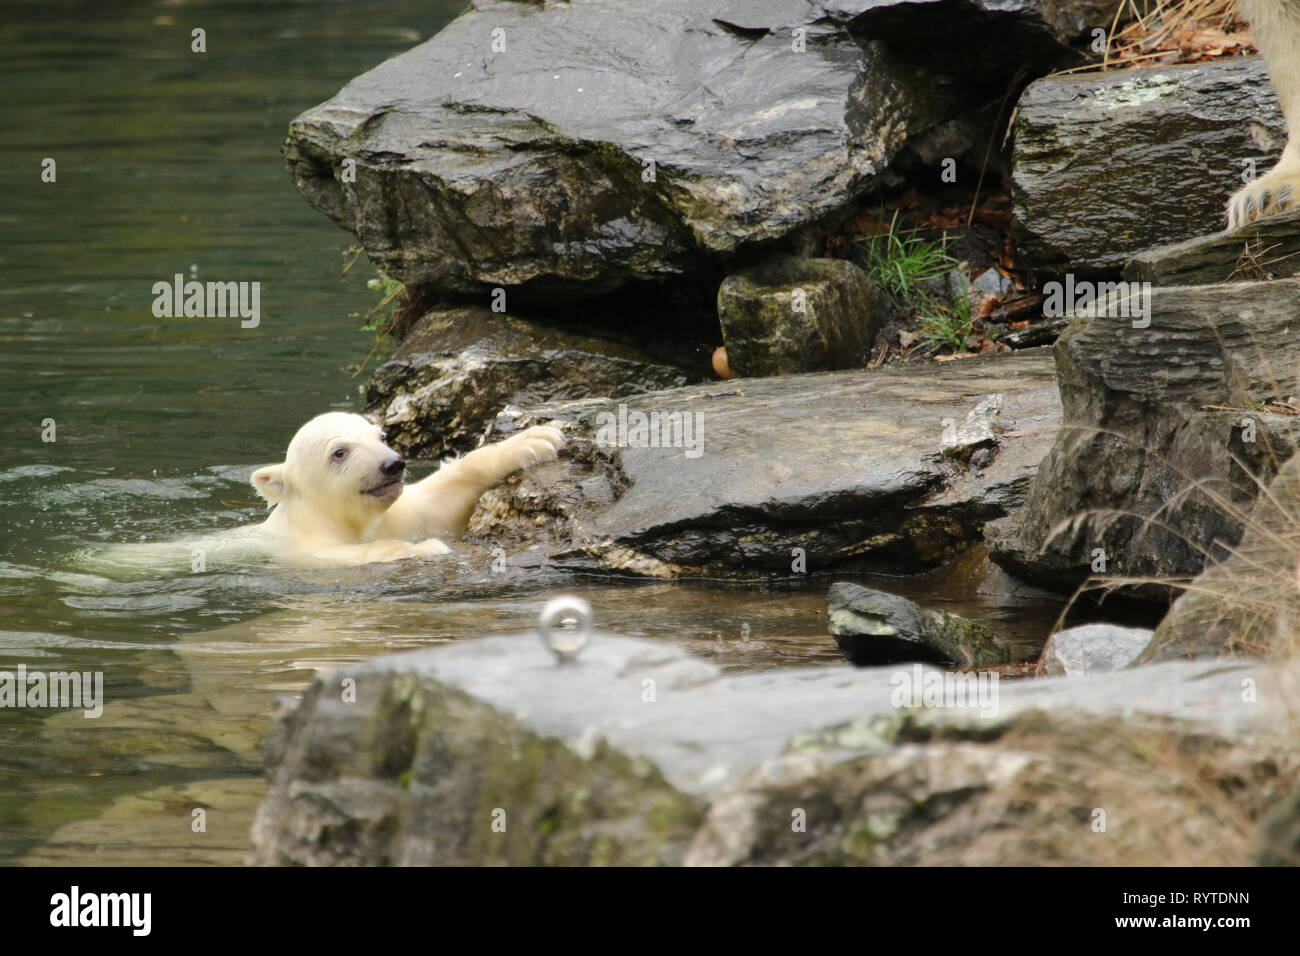 Gottschalk Live Now, the little polar bear is a must the legal